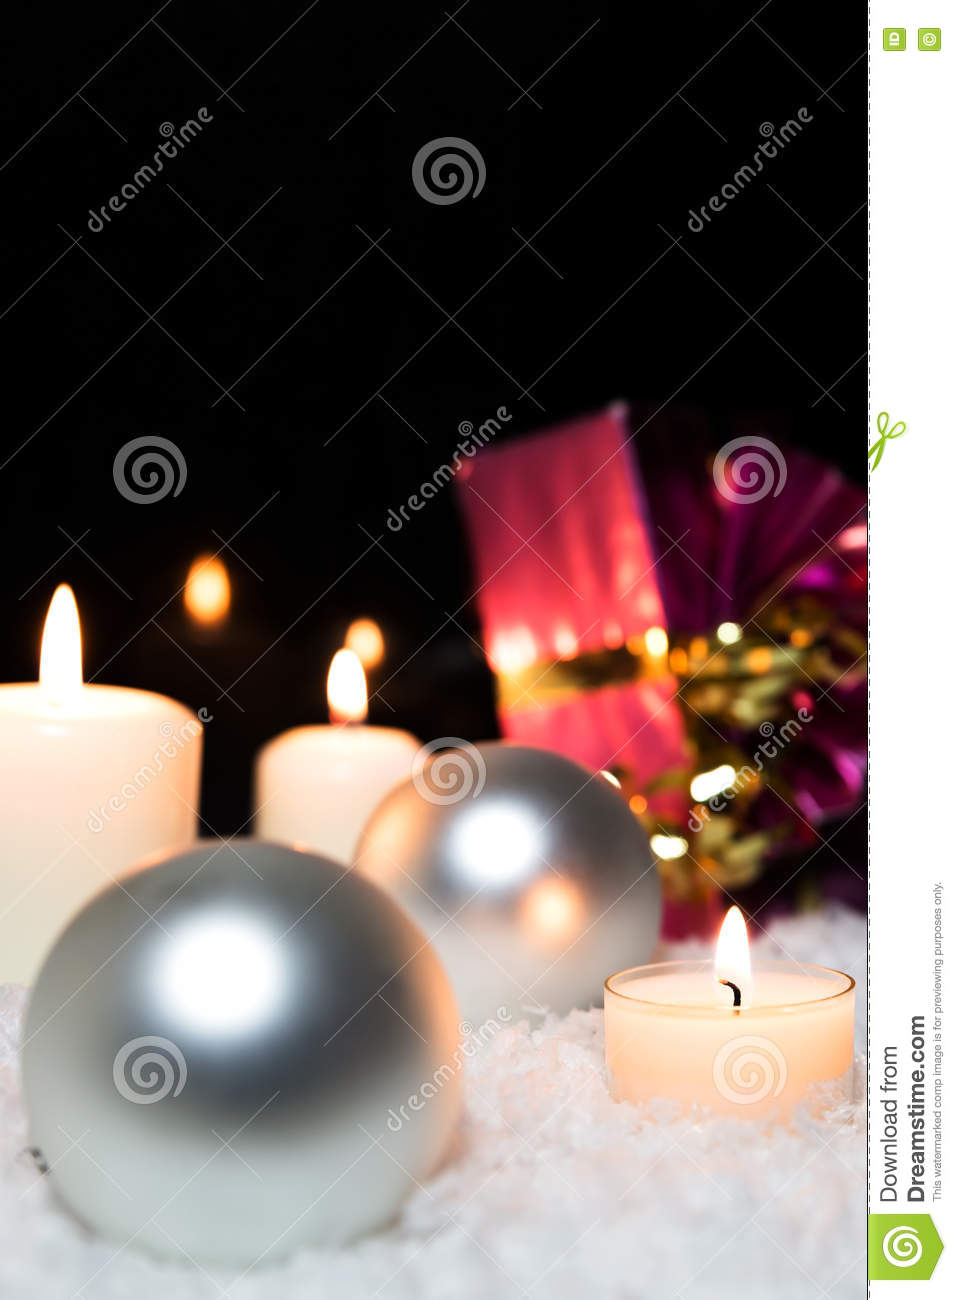 Silver christmas balls, candles and a red gift in the snow